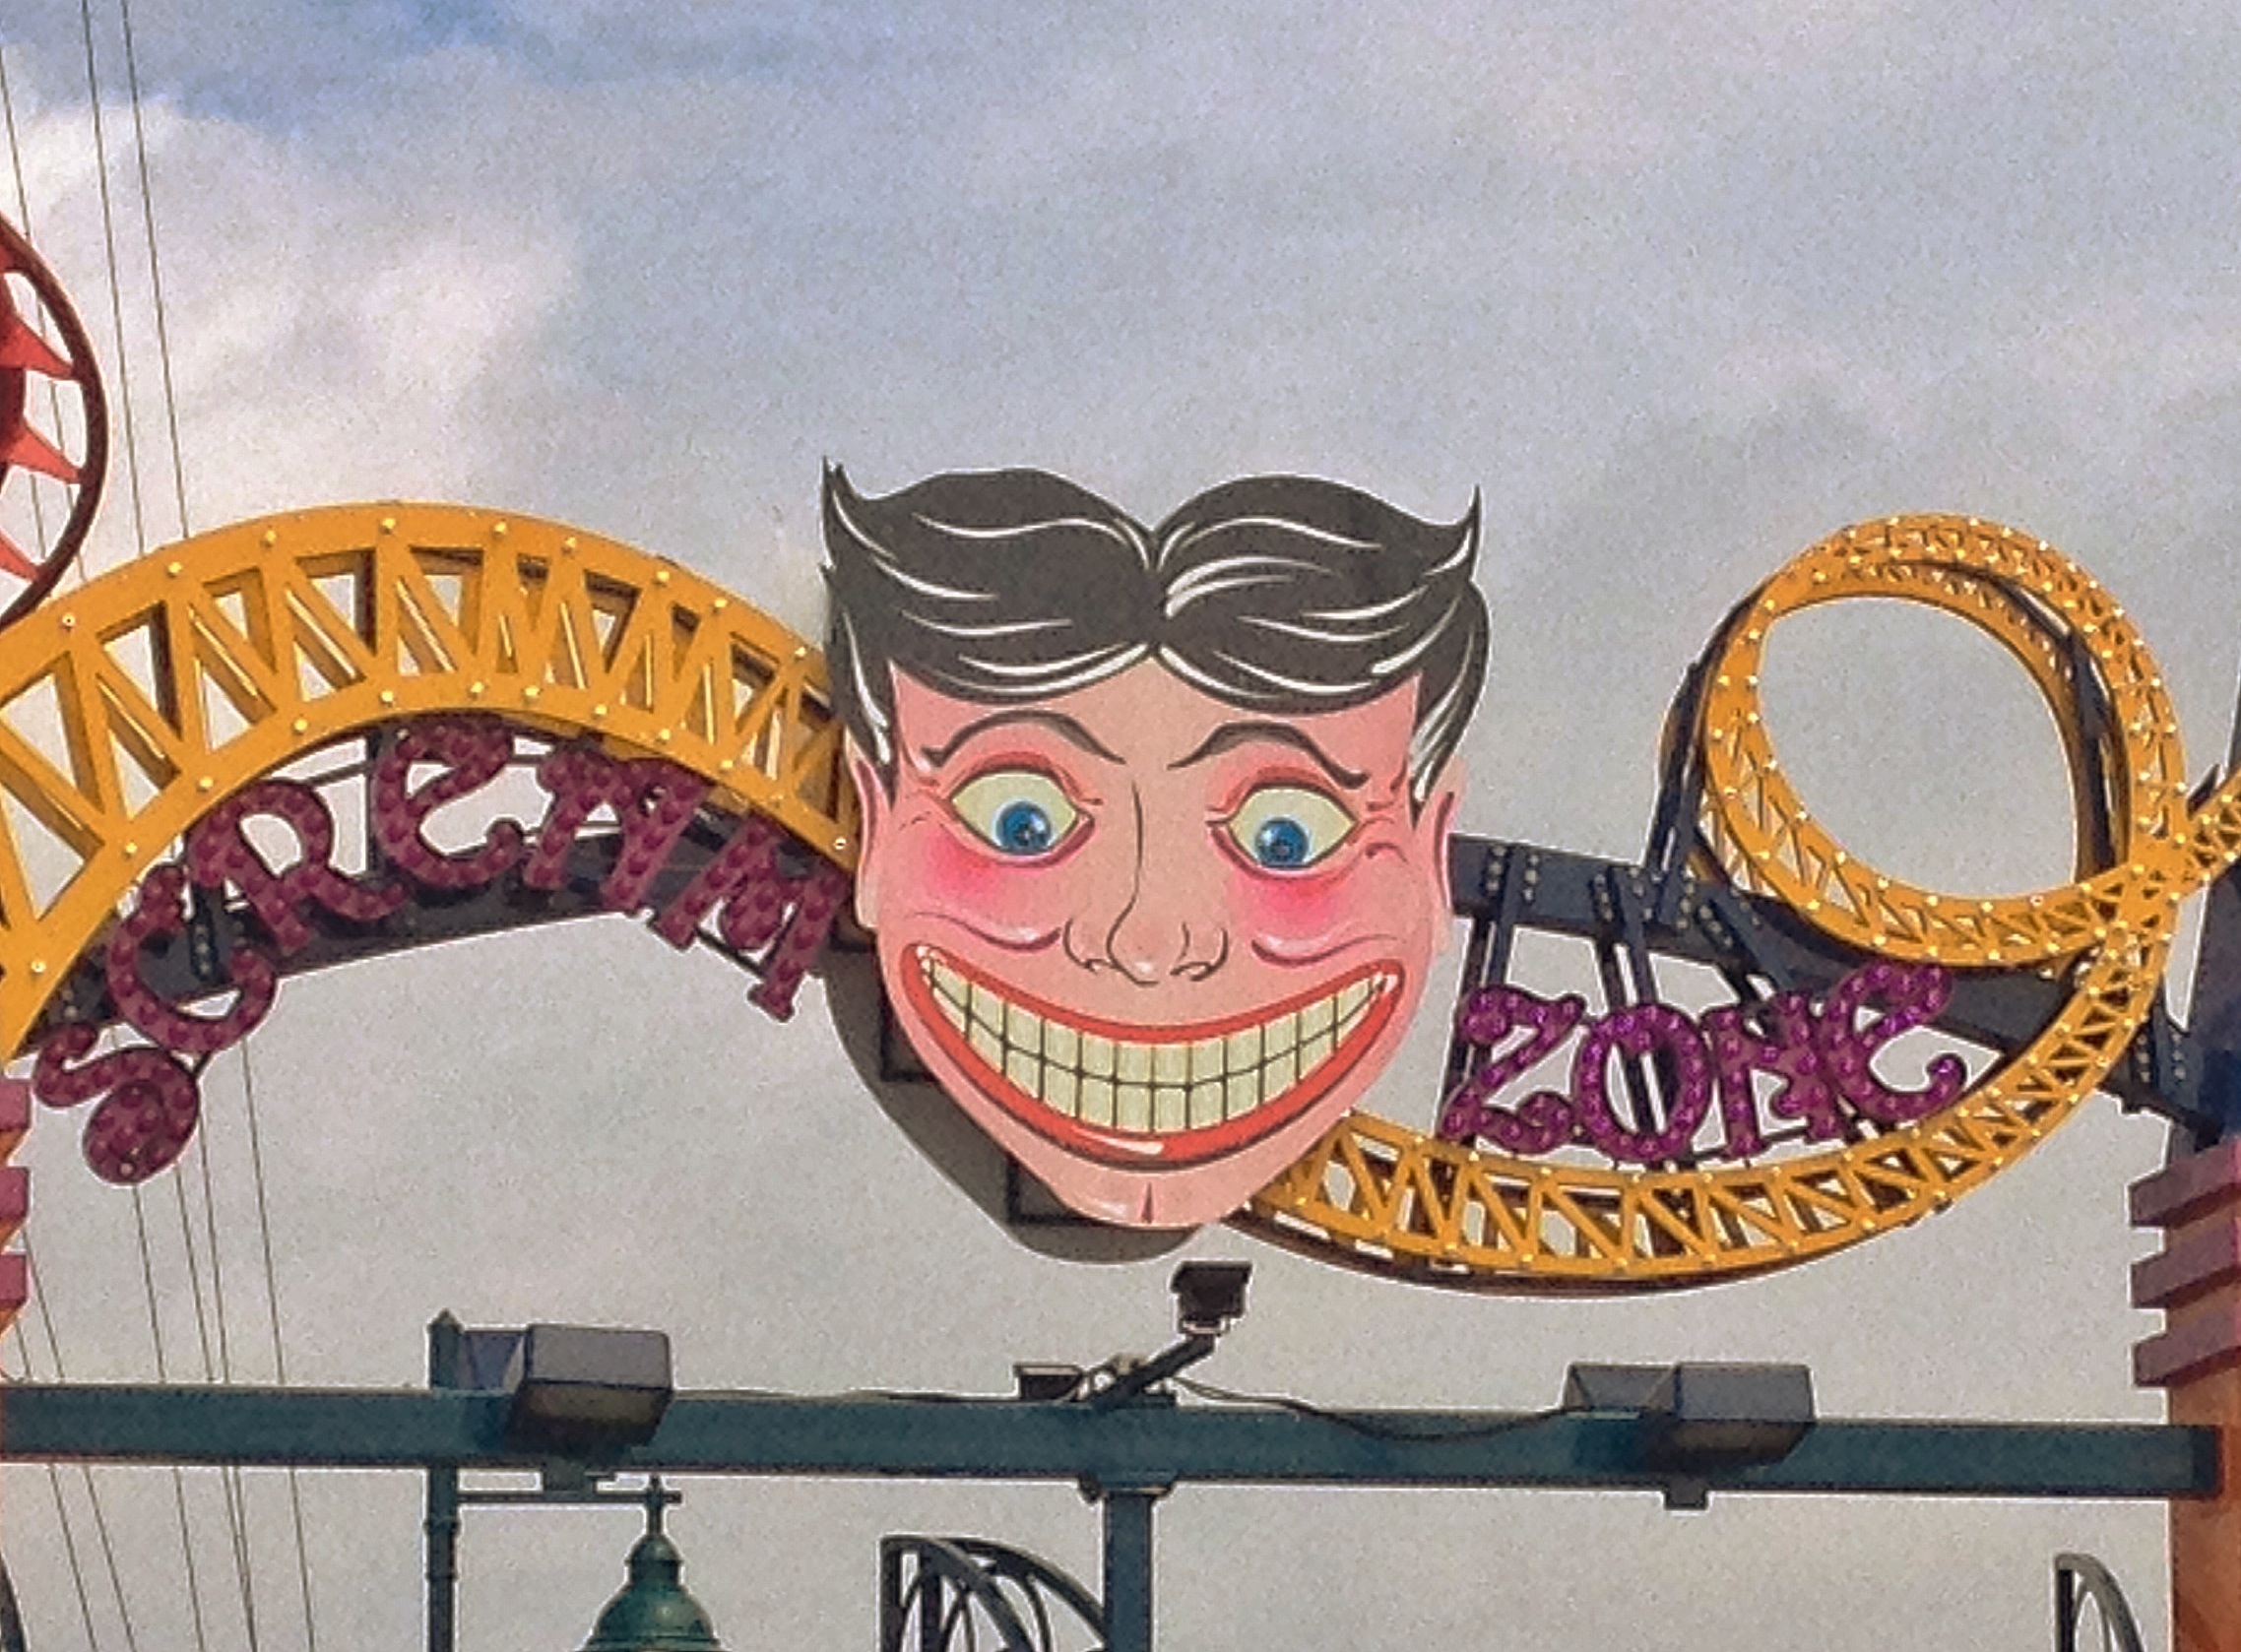 Coney Island's kind of scary